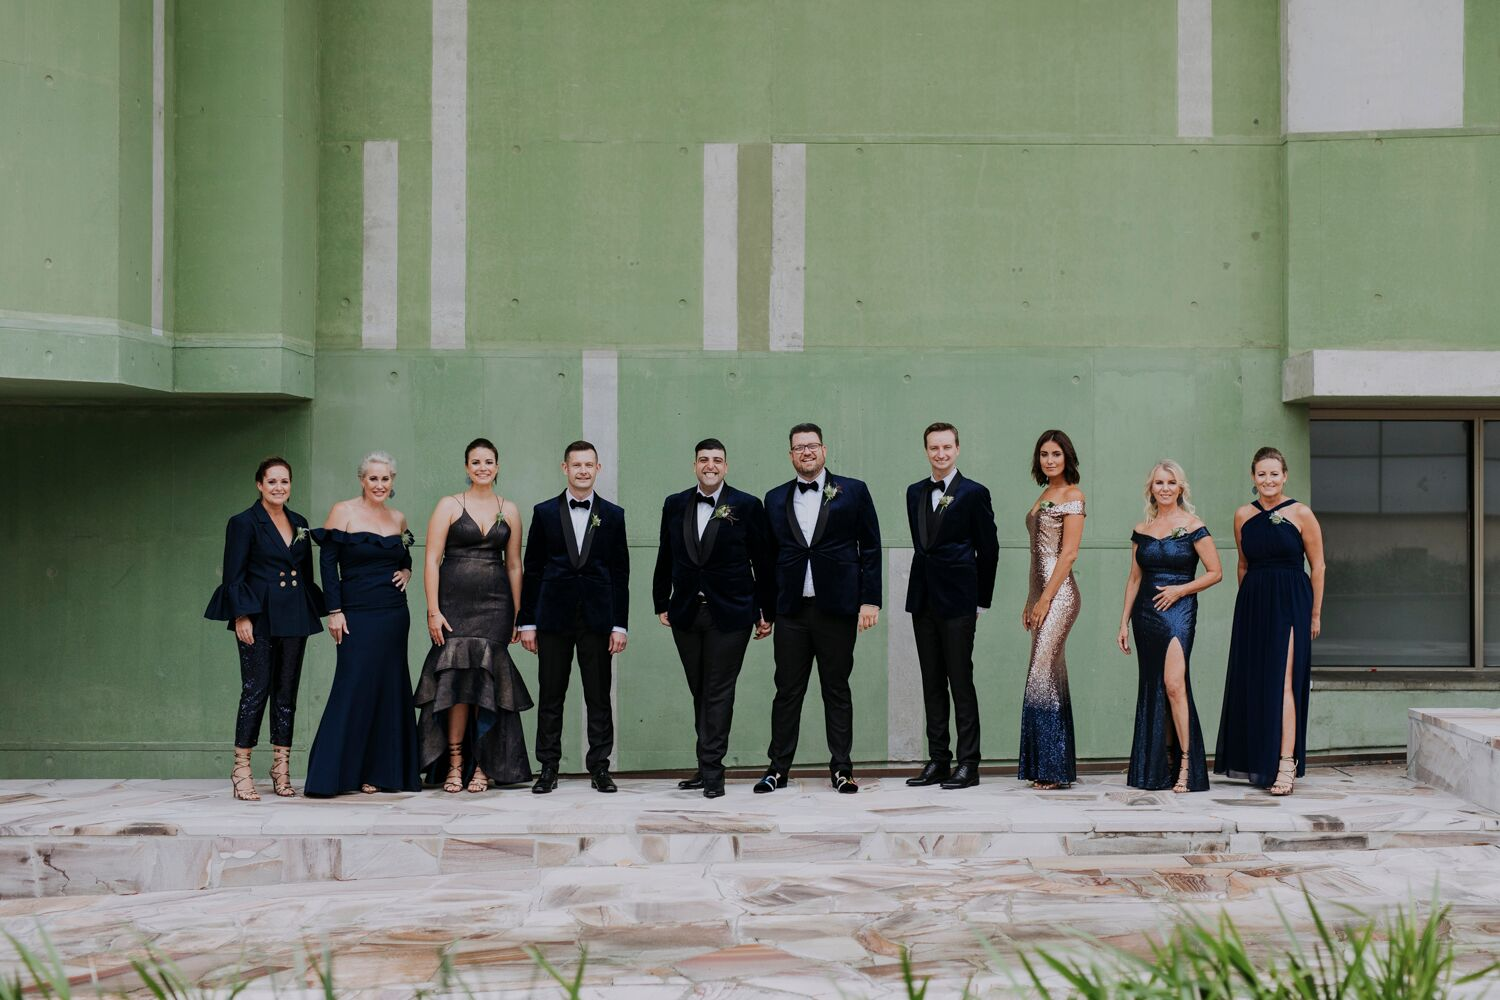 The W Hotel wedding special day suits formal wear